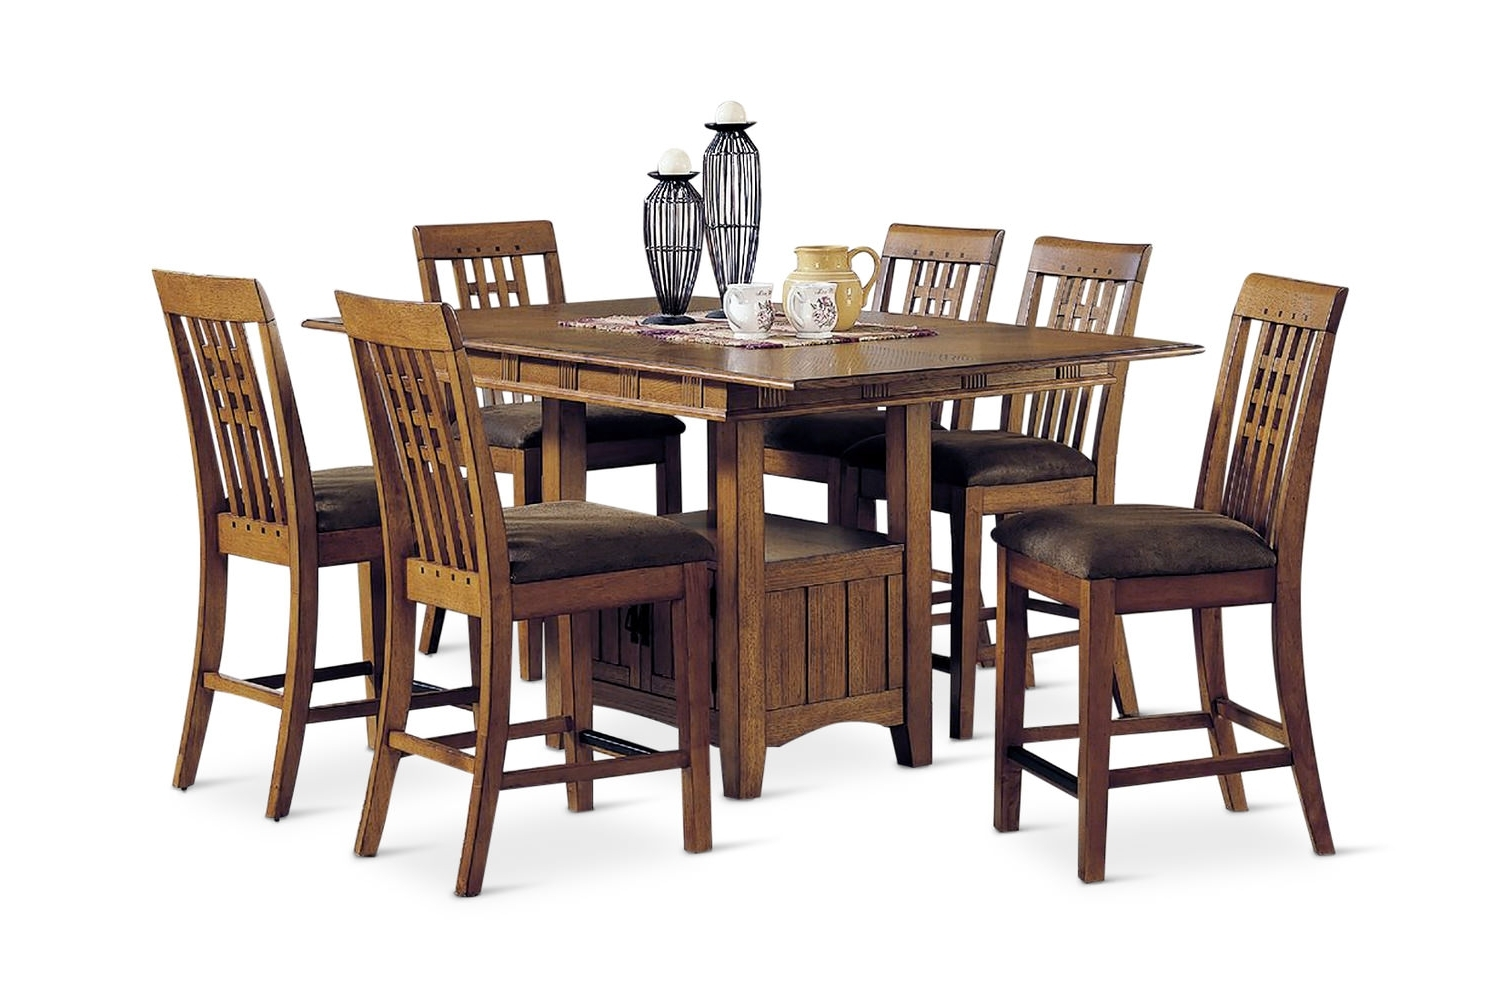 Most Popular Dining Sets – Kitchen & Dining Room Sets – Hom Furniture Intended For Craftsman 7 Piece Rectangle Extension Dining Sets With Arm & Side Chairs (View 17 of 25)